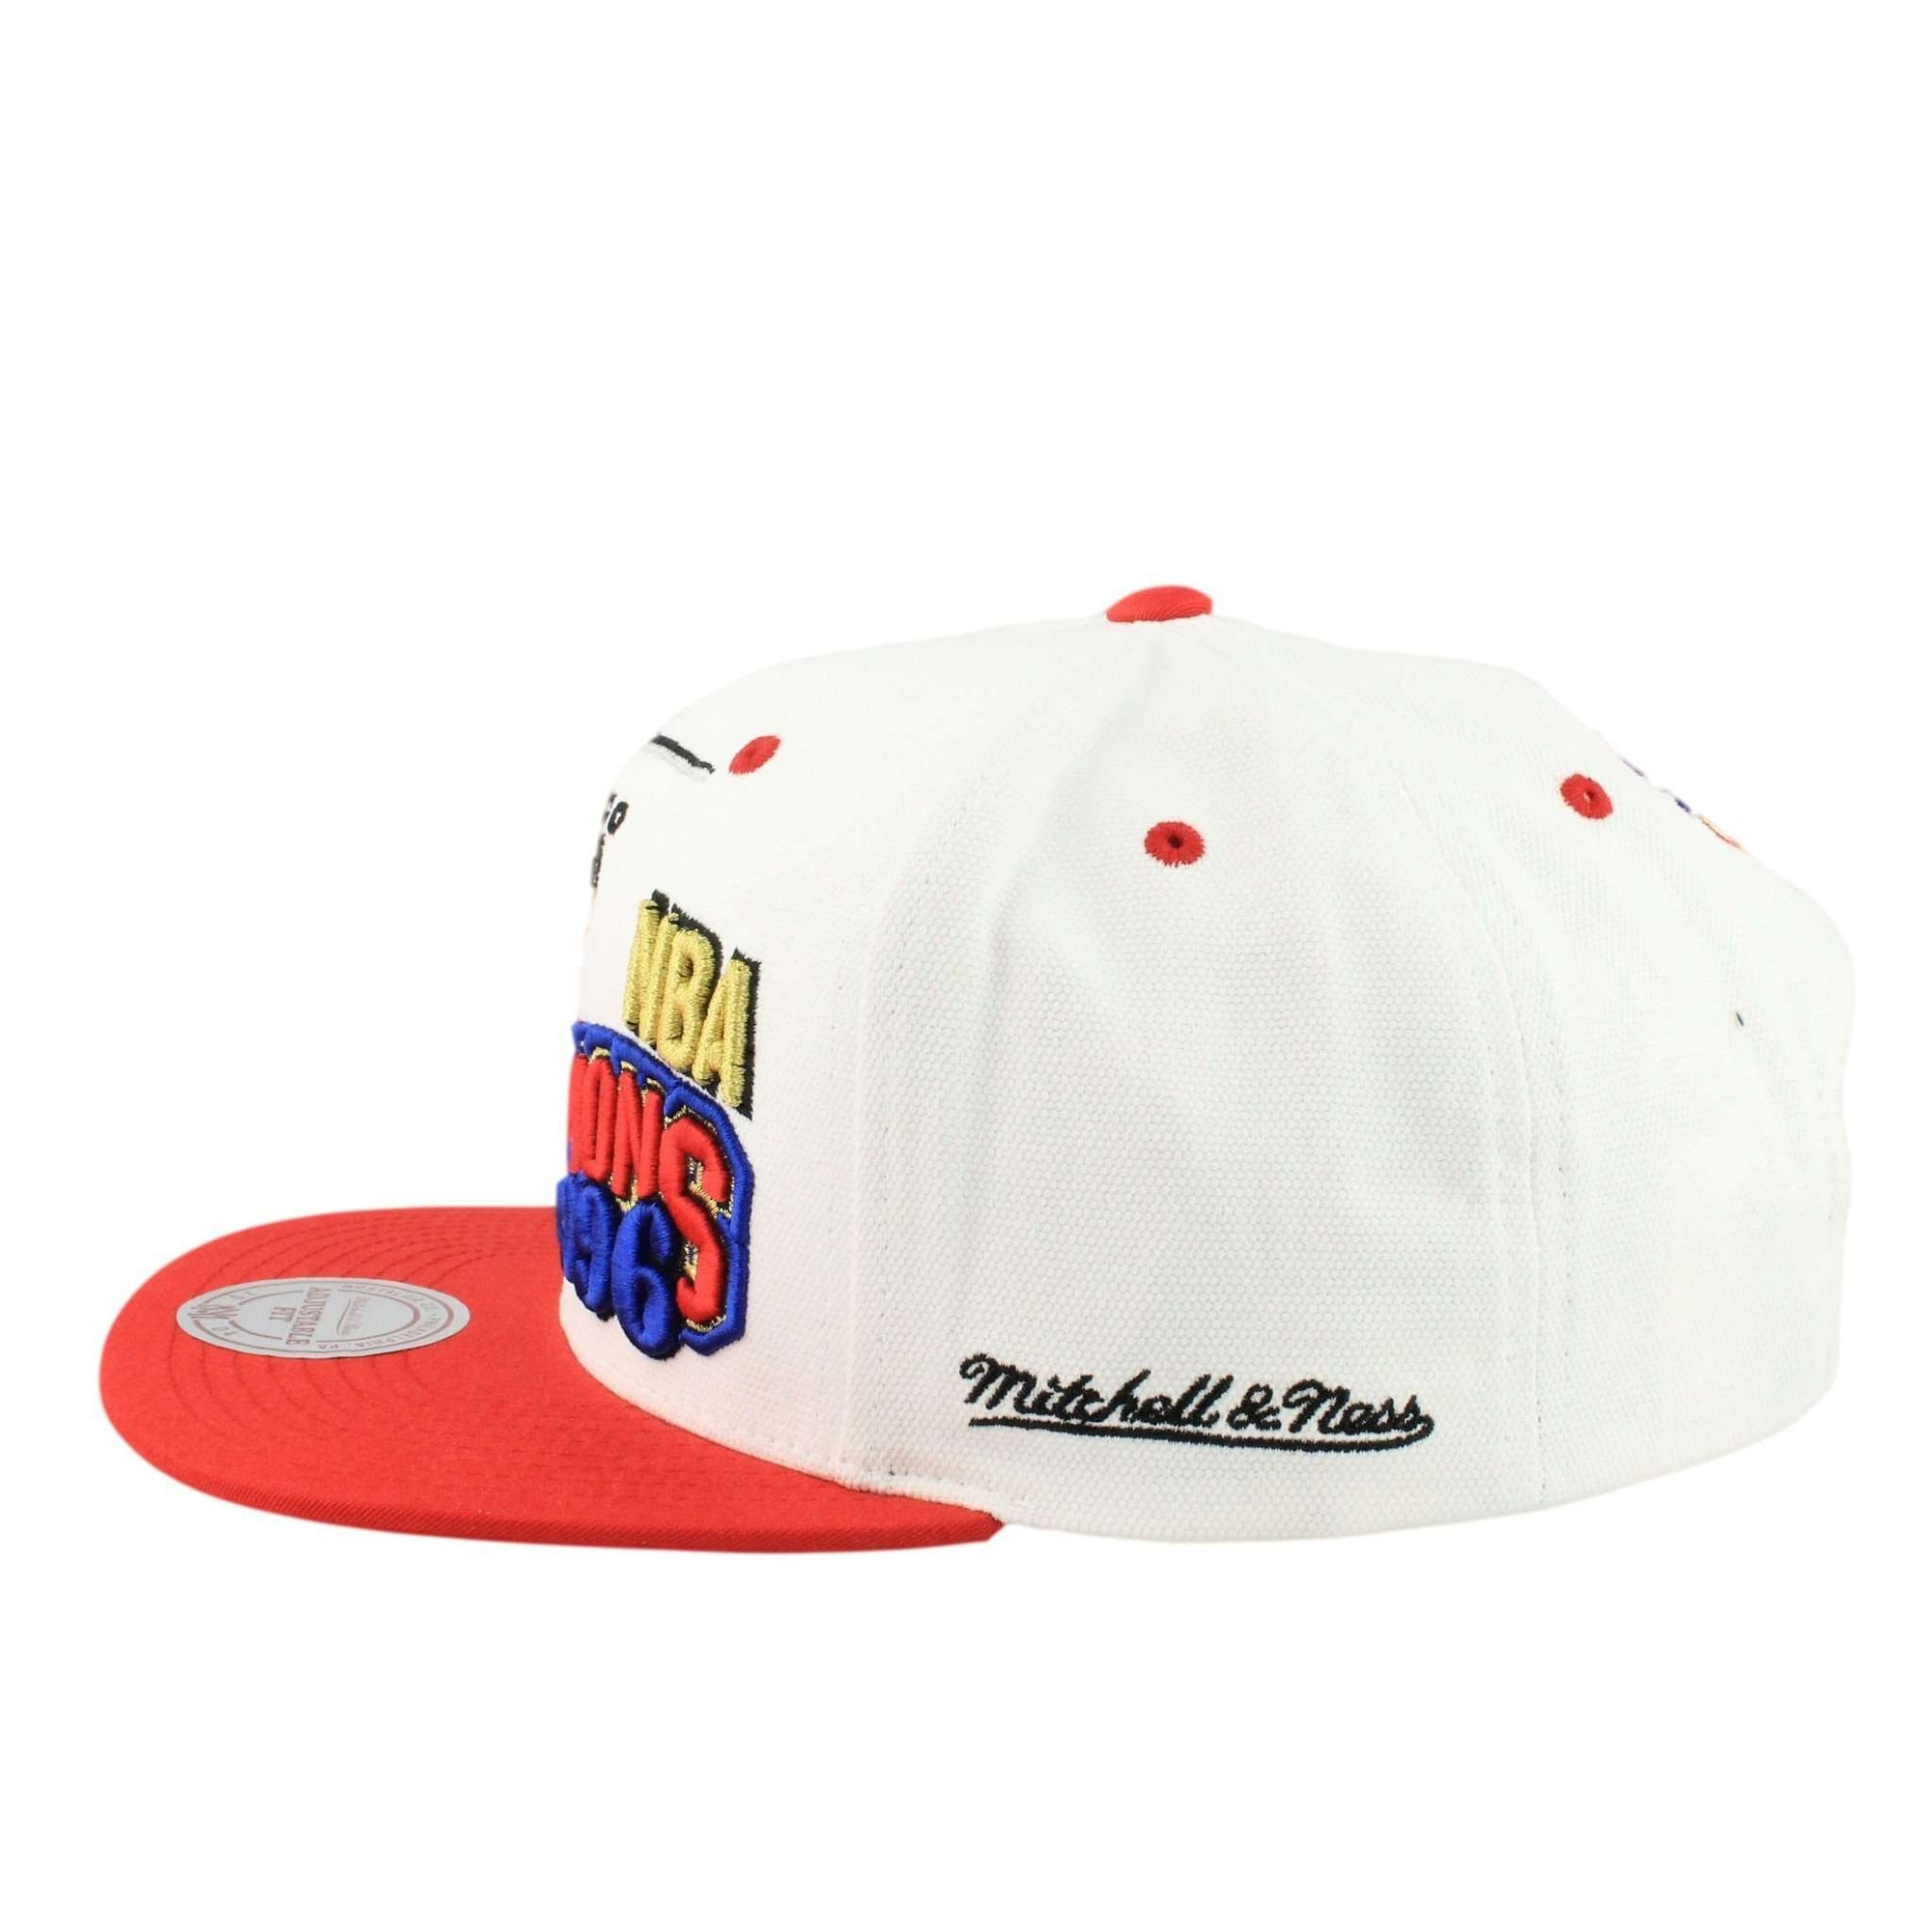 0a7ee8ac641 ... reduced mitchell and ness chicago bulls nba 1996 champions white red  snapback f82d7 7cc31